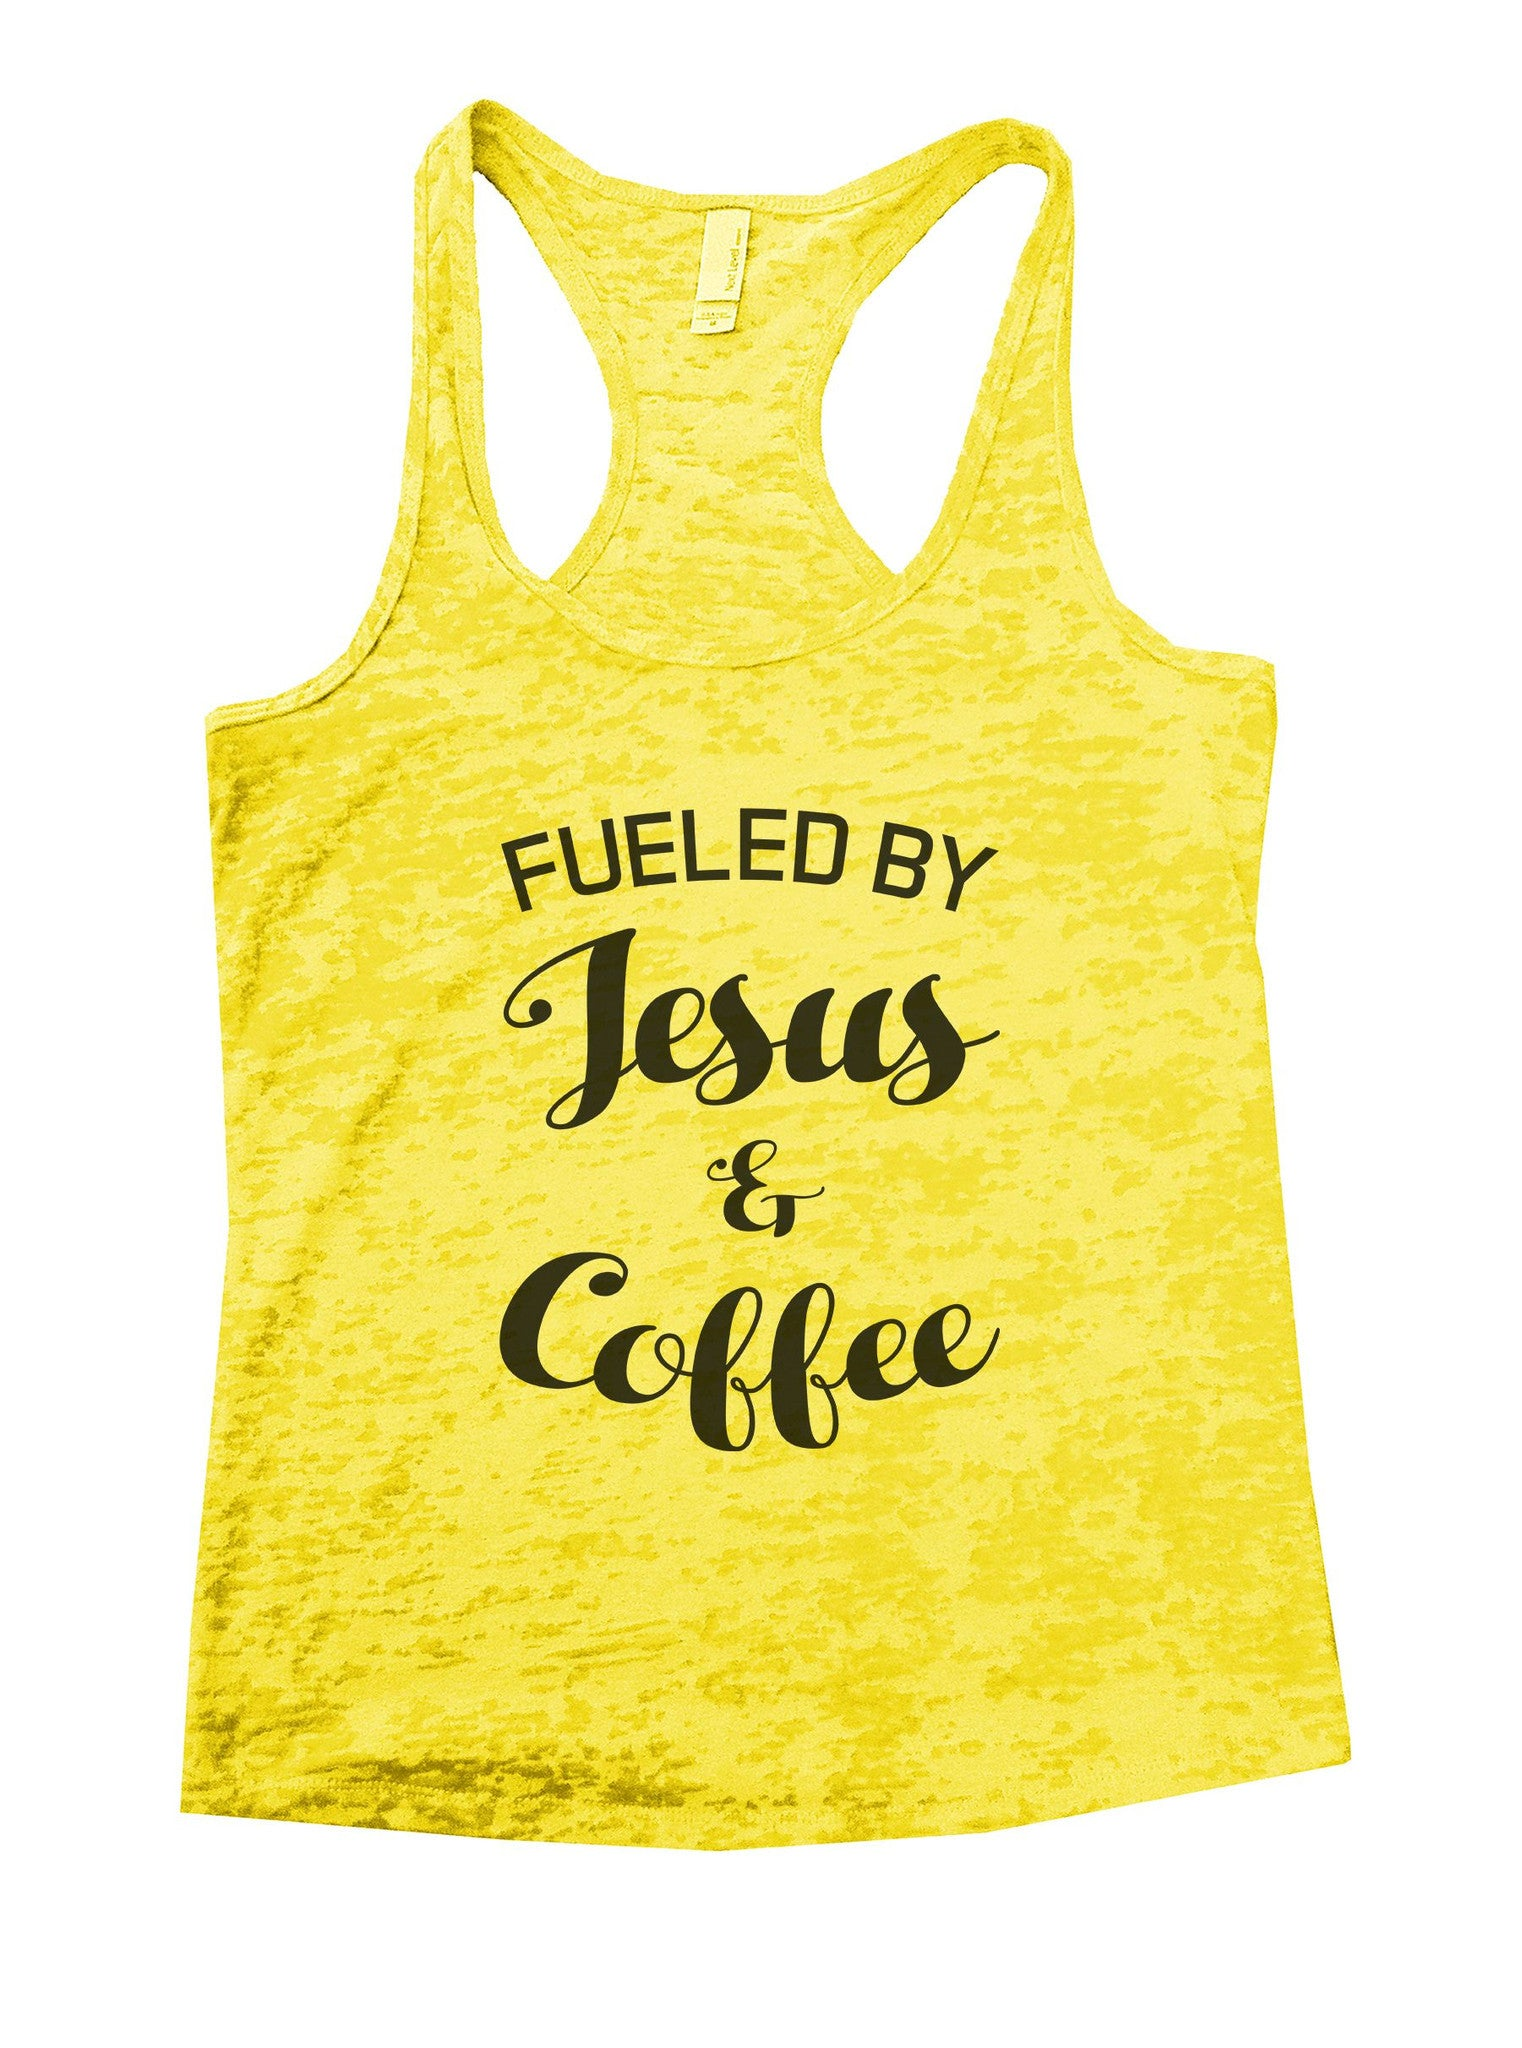 Fueled By Jesus & Coffee Burnout Tank Top By BurnoutTankTops.com - 1128 - Funny Shirts Tank Tops Burnouts and Triblends  - 7